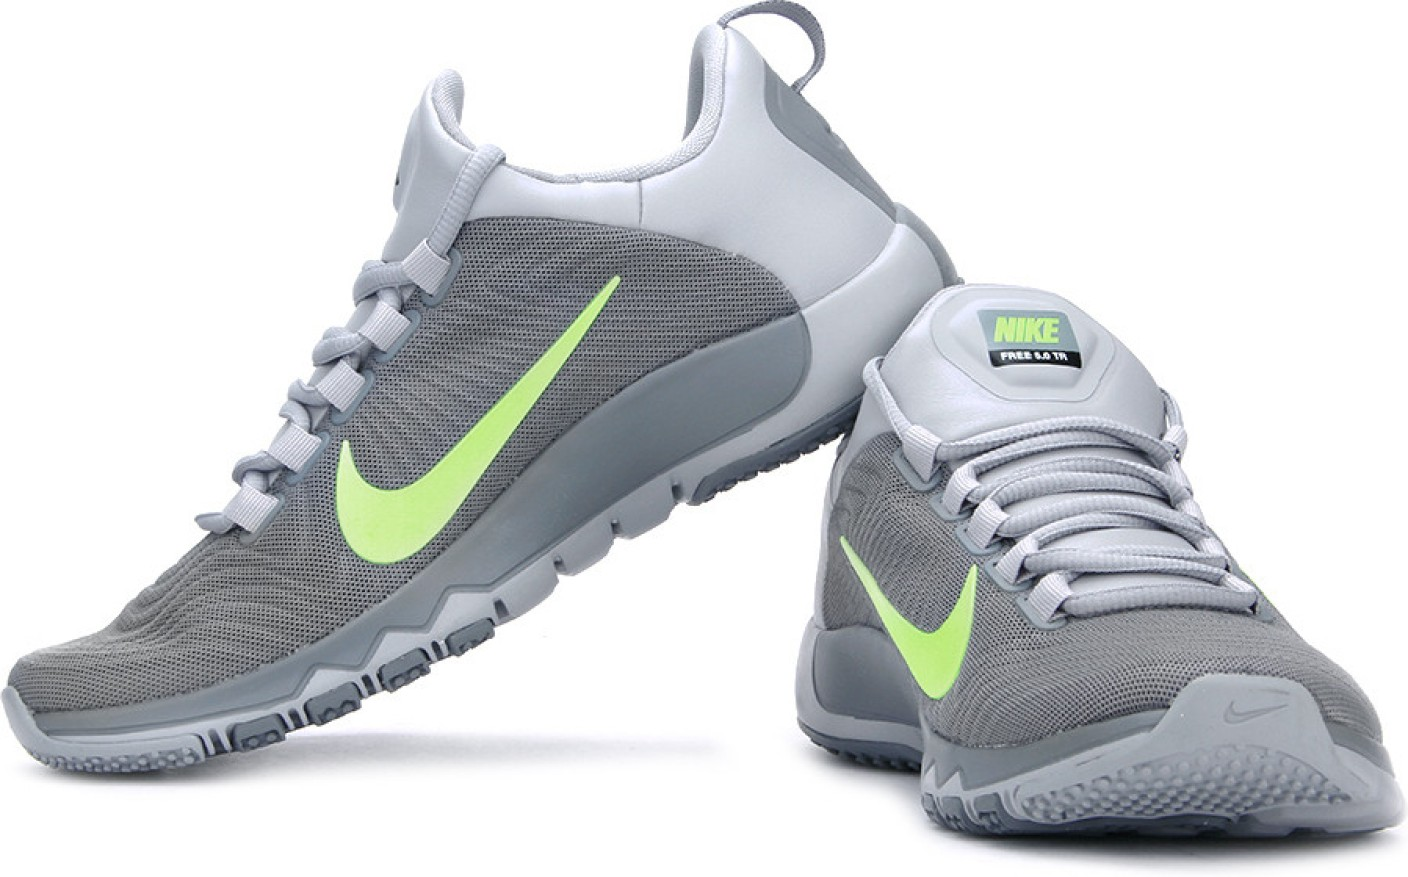 Are Nike Shoes Good For Your Feet When Running